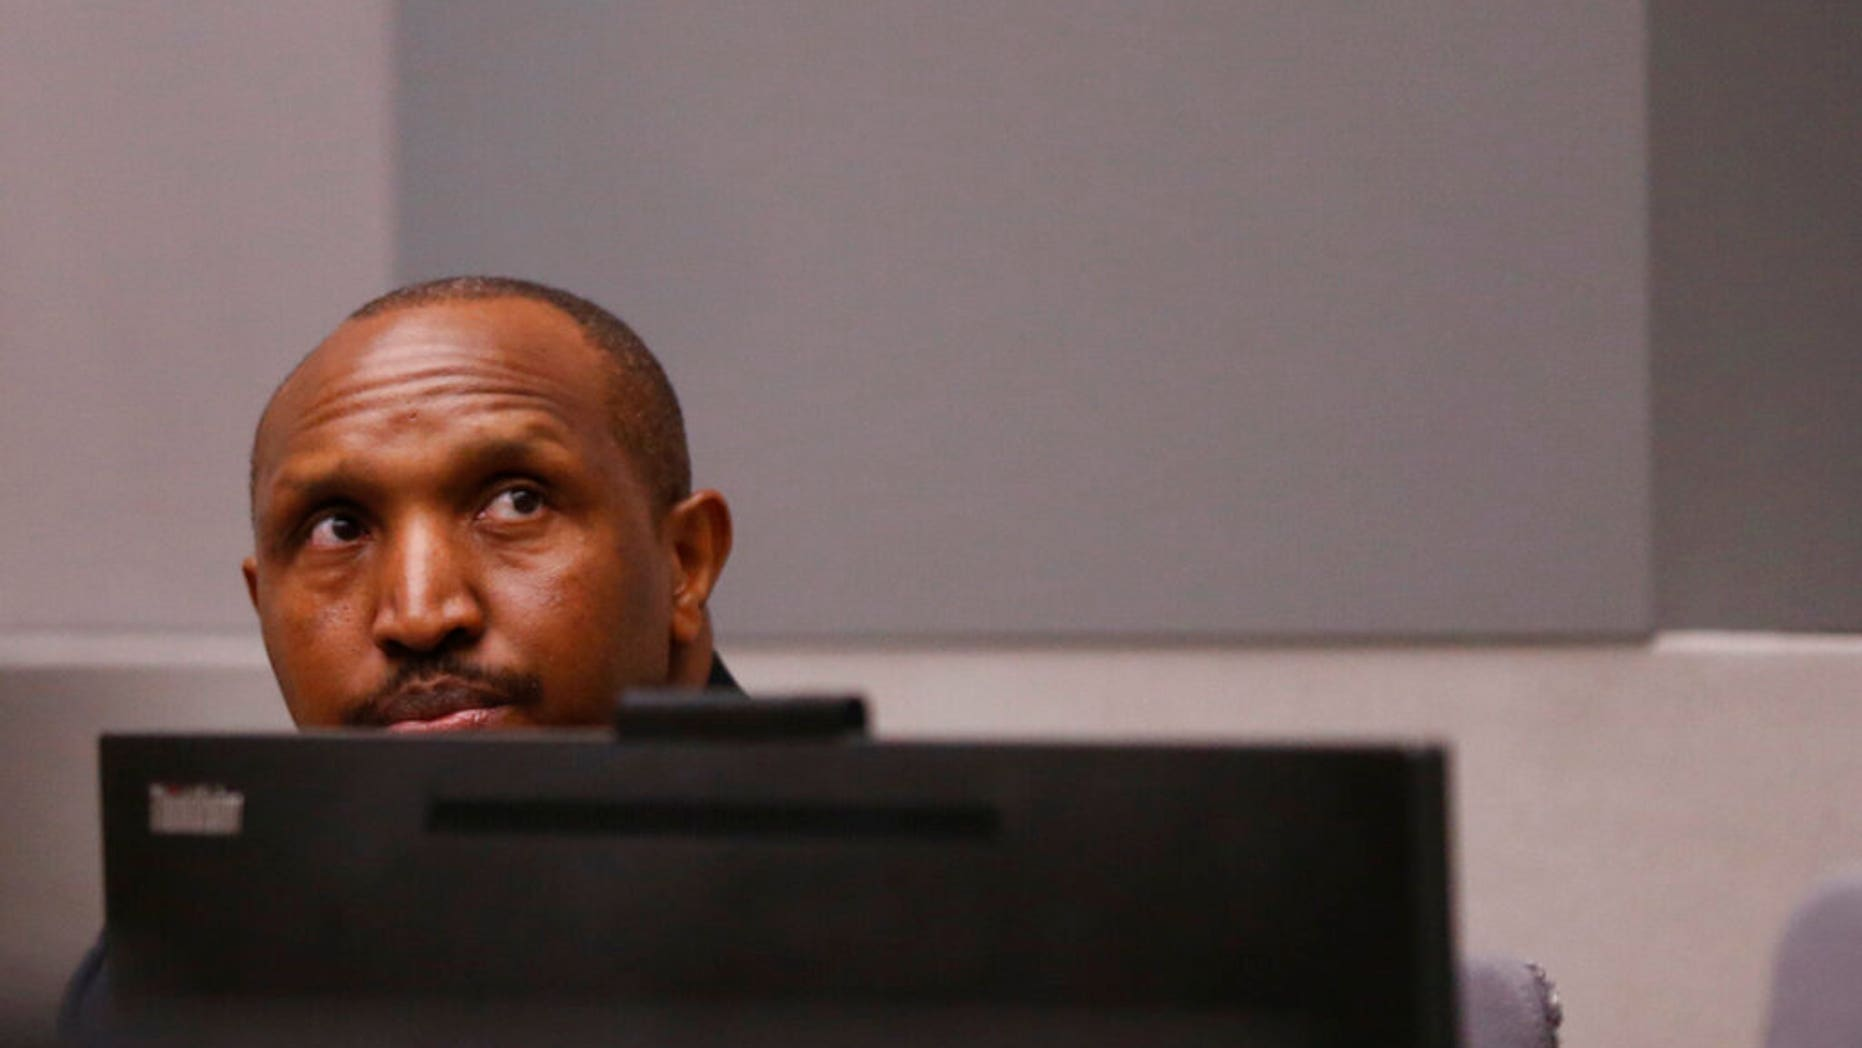 Congolese company commander Bosco Ntaganda sits in a courtroom of a ICC (International Criminal Court) during his hearing during a Hague in a Netherlands, Monday Jul 8, 2019.